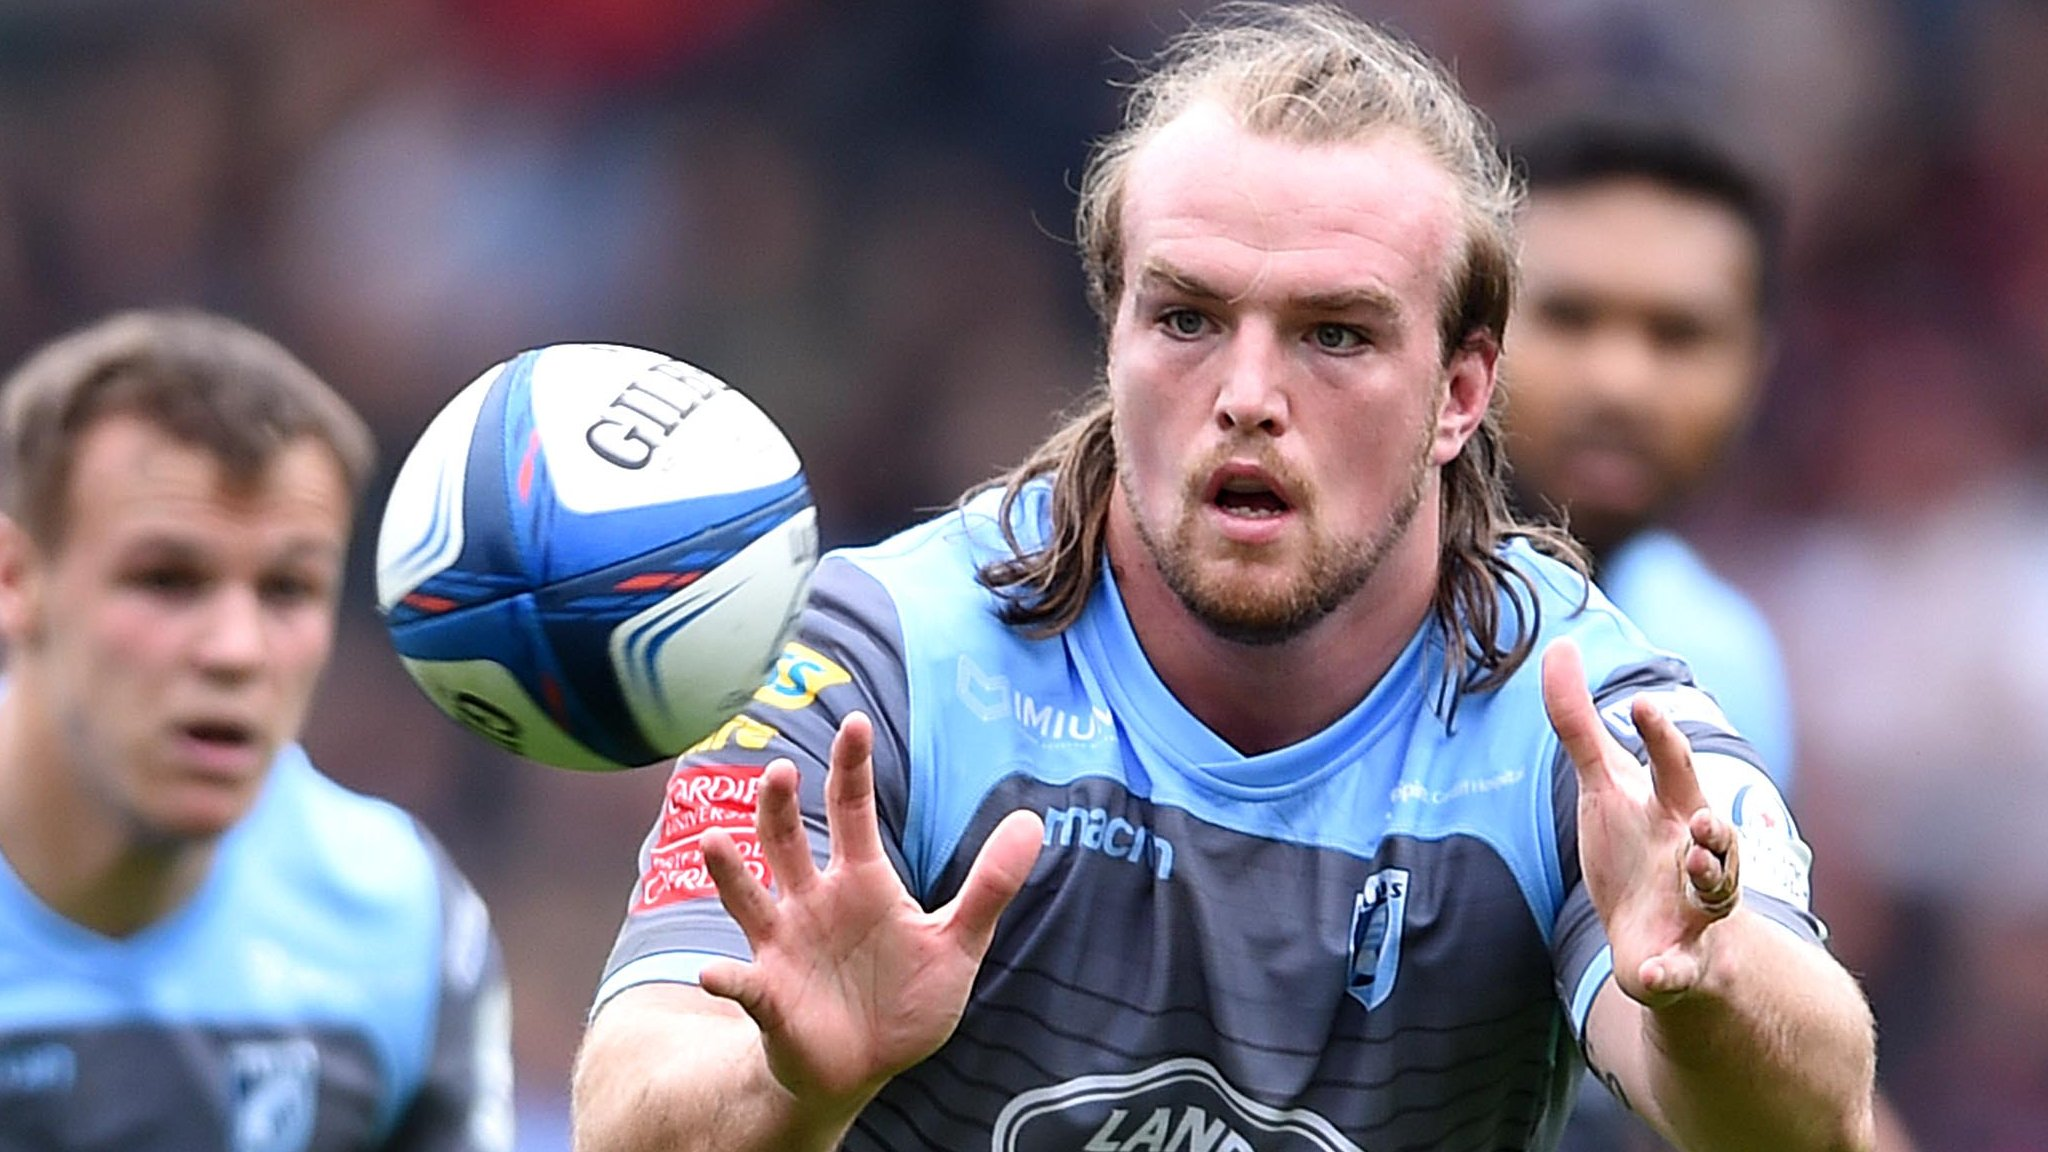 Wales hooker Dacey signs to stay at Cardiff Blues